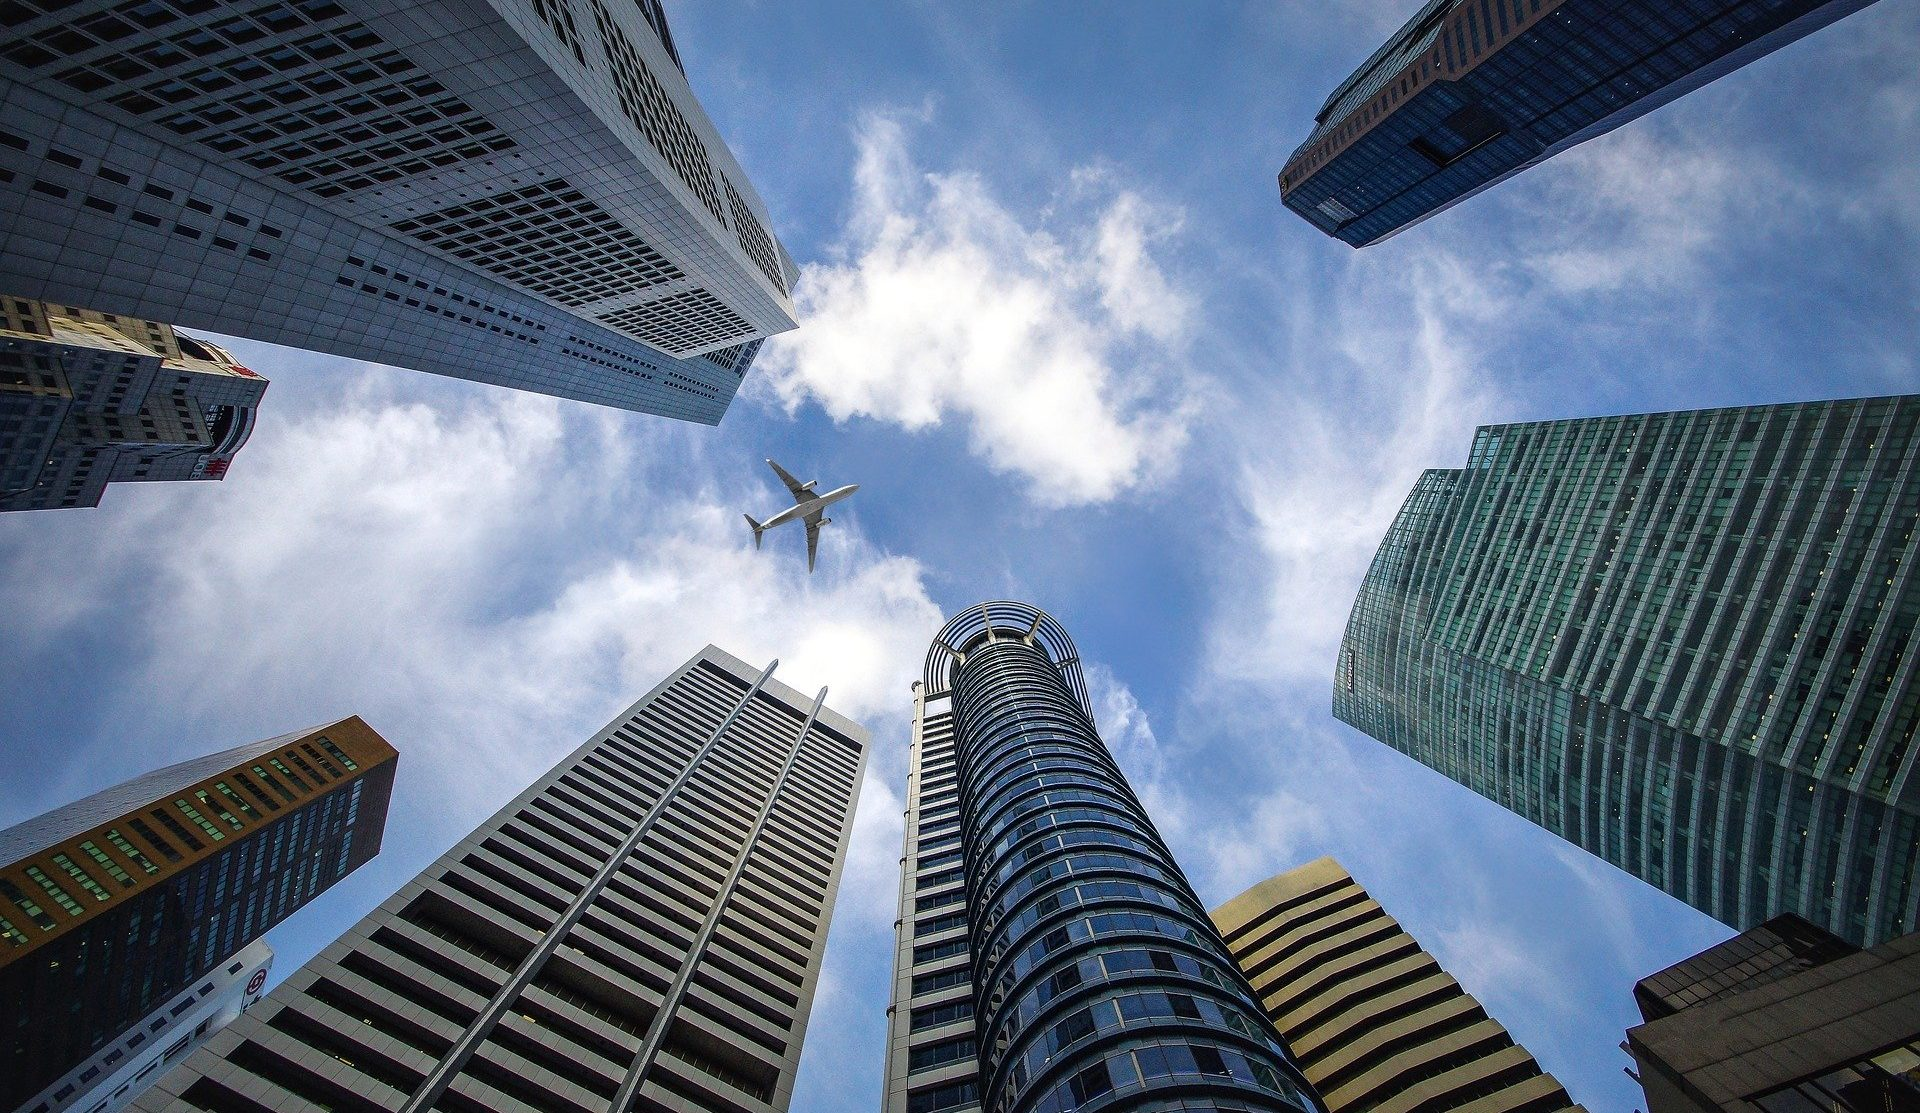 Looking straight up, a plane is seen flying above skyscrapers.